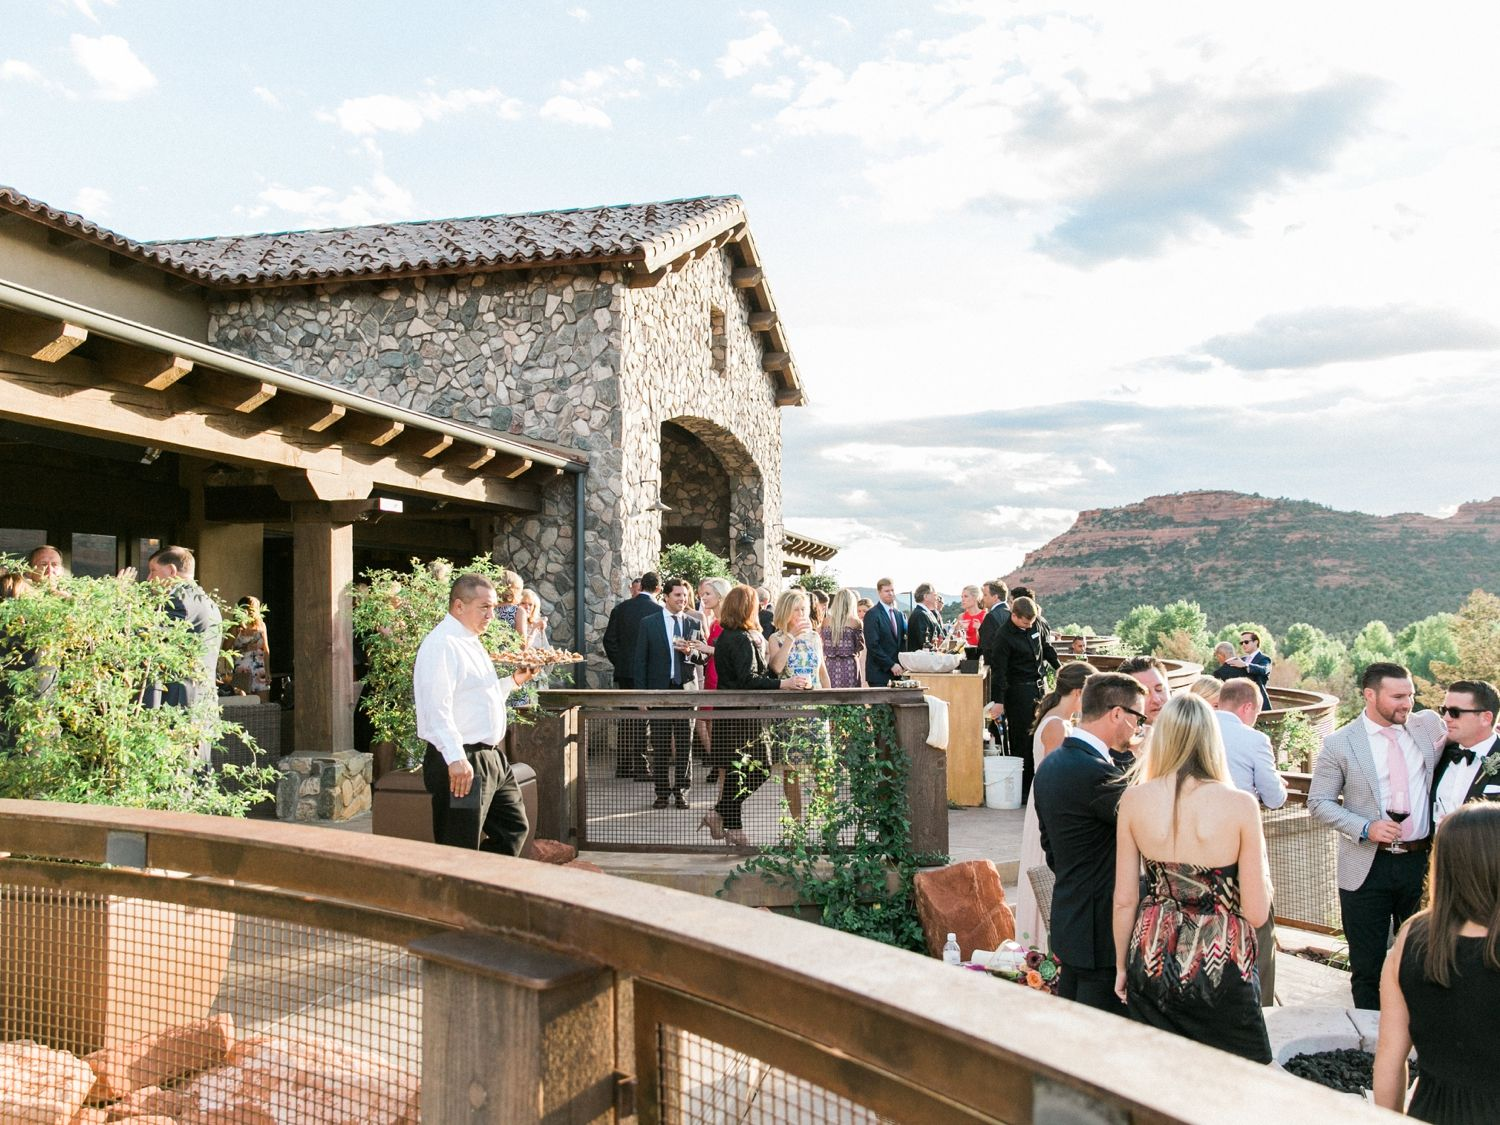 Wedding event background  Outdoor Patio with Mountains in Background  Sedona Southwest Themed